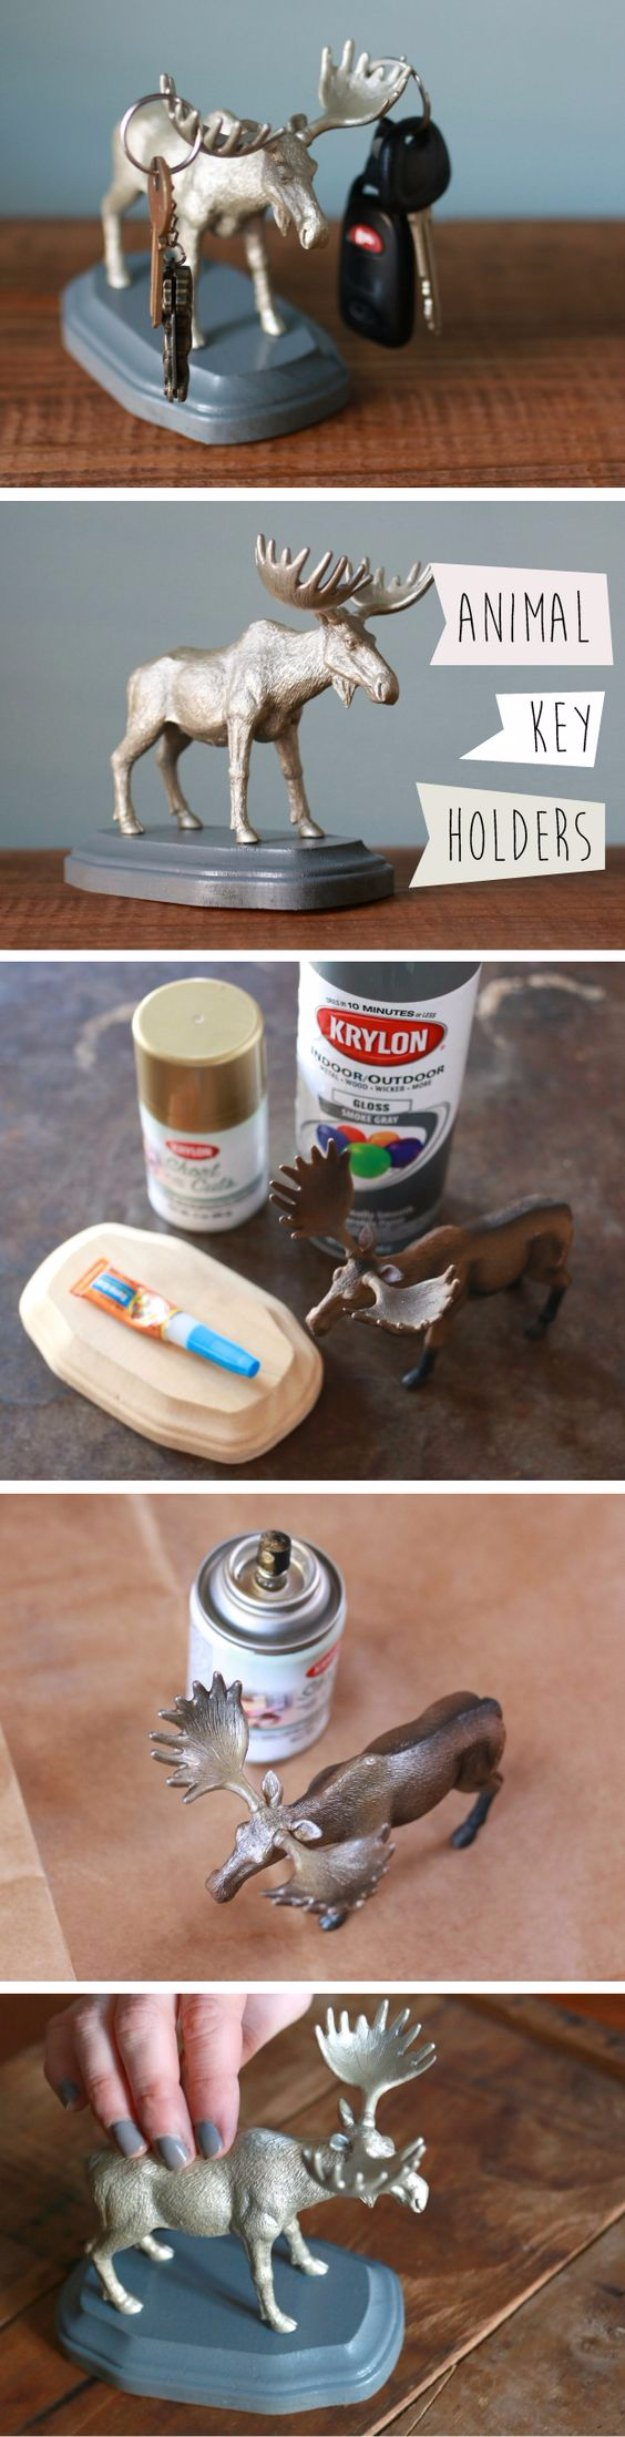 Easy Crafts To Make and Sell - Animal Key Holders - Cool Homemade Craft Projects You Can Sell On Etsy, at Craft Fairs, Online and in Stores. Quick and Cheap DIY Ideas that Adults and Even Teens #craftstosell #diyideas #crafts